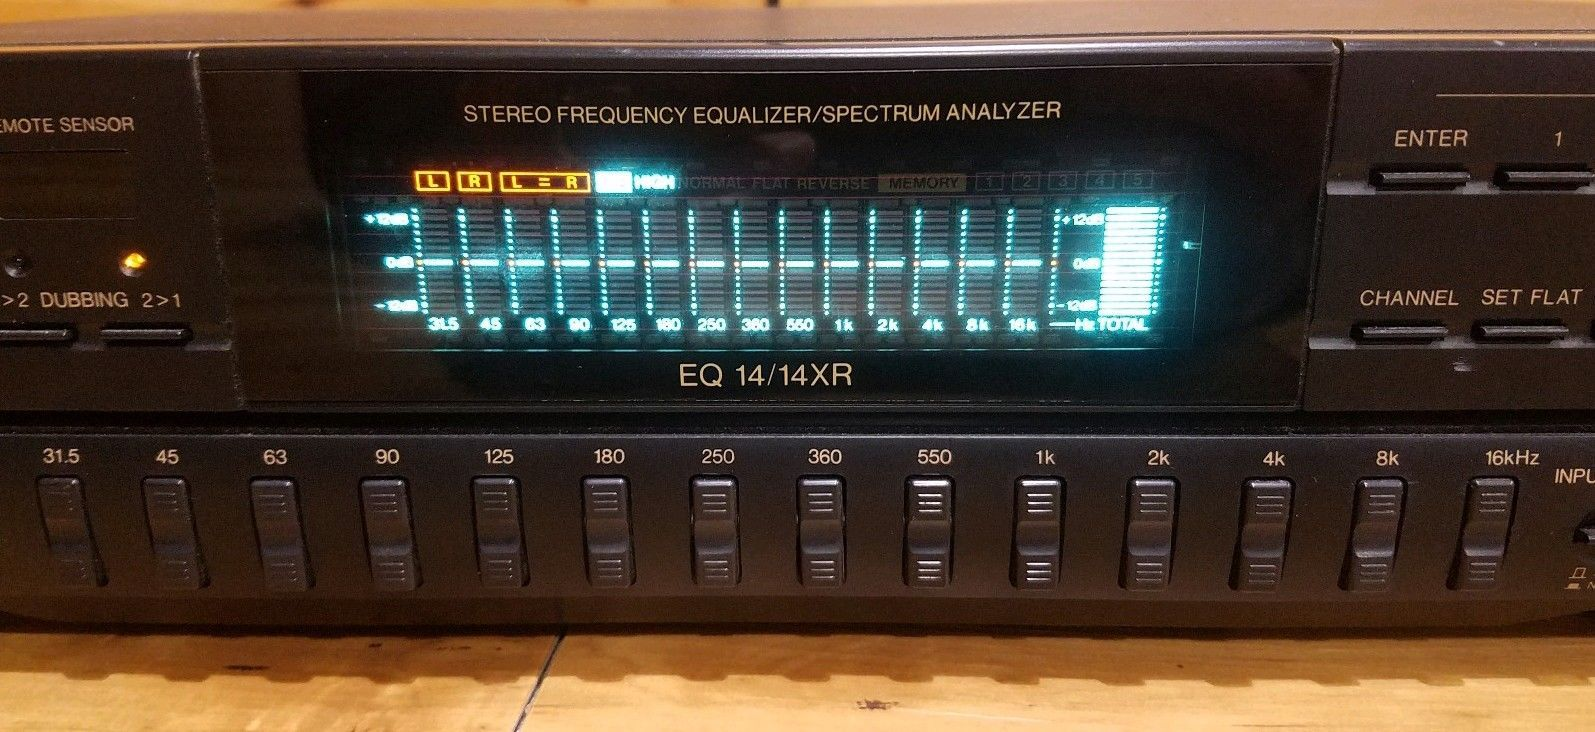 BSR EQ-14/14XR 14 Band Stereo Graphic Equalizer Spectrum